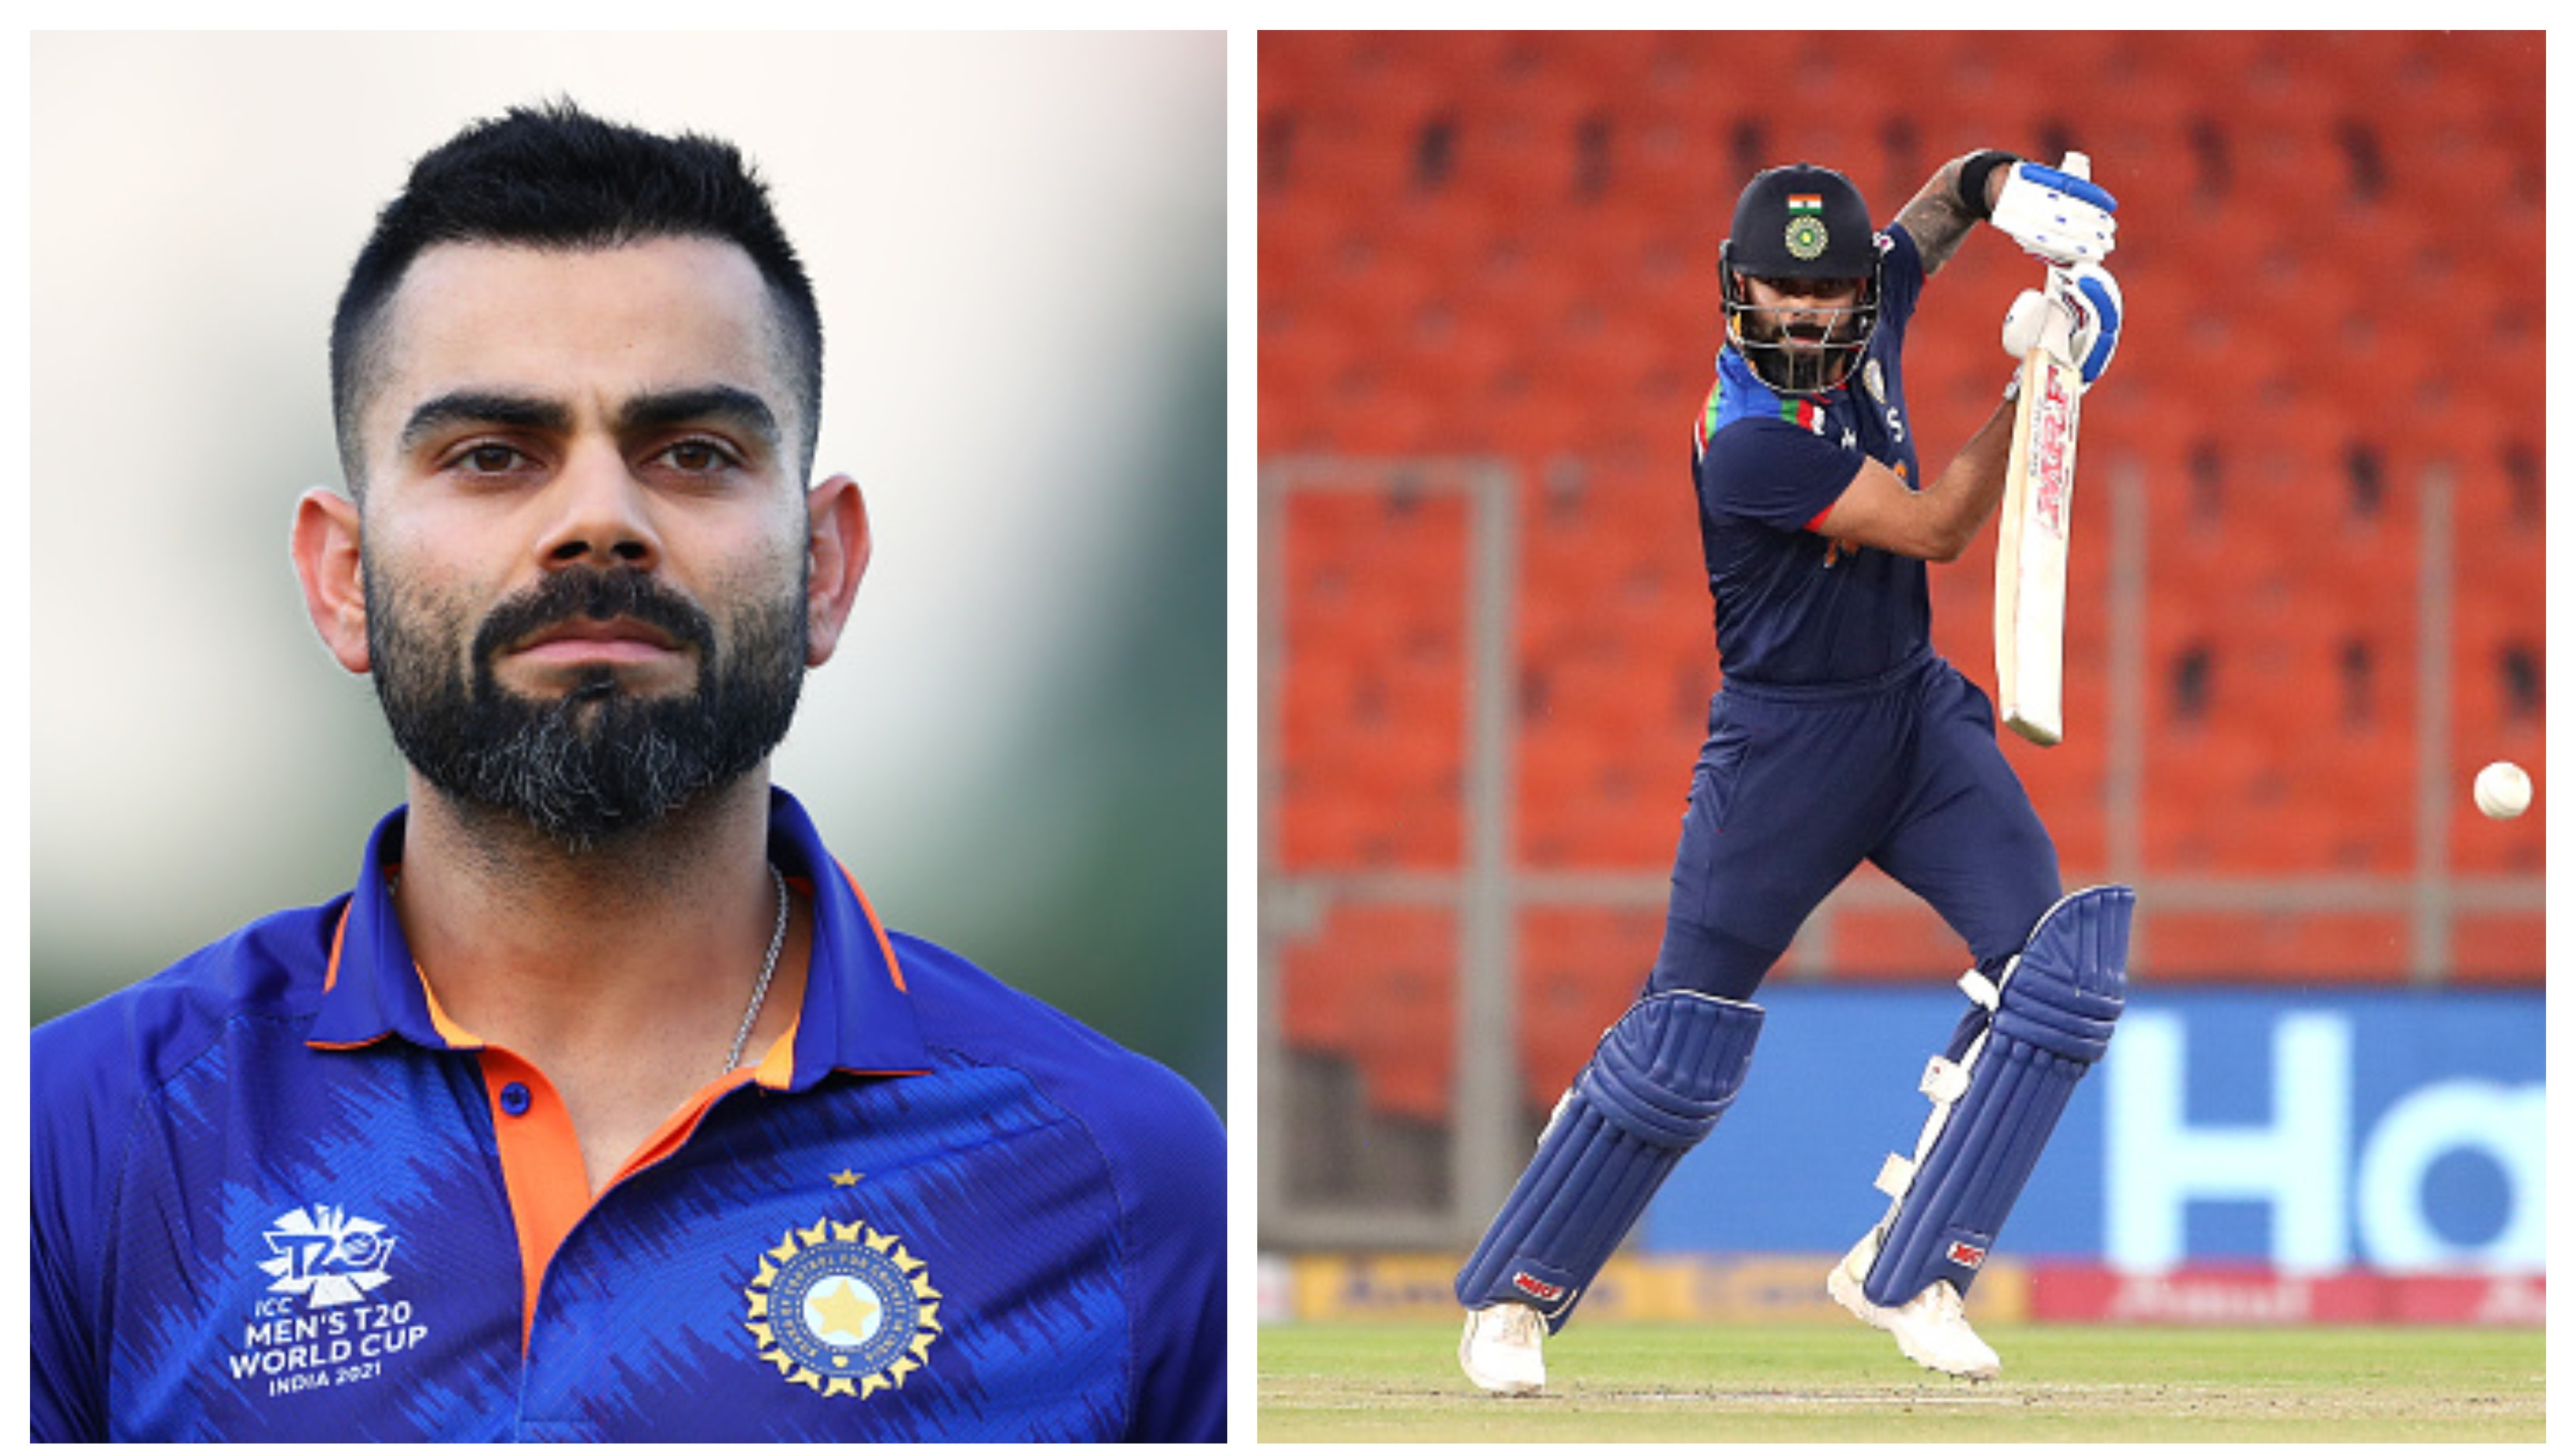 T20 World Cup 2021: Virat Kohli confirms he will bat at No. 3 for India in the T20 World Cup